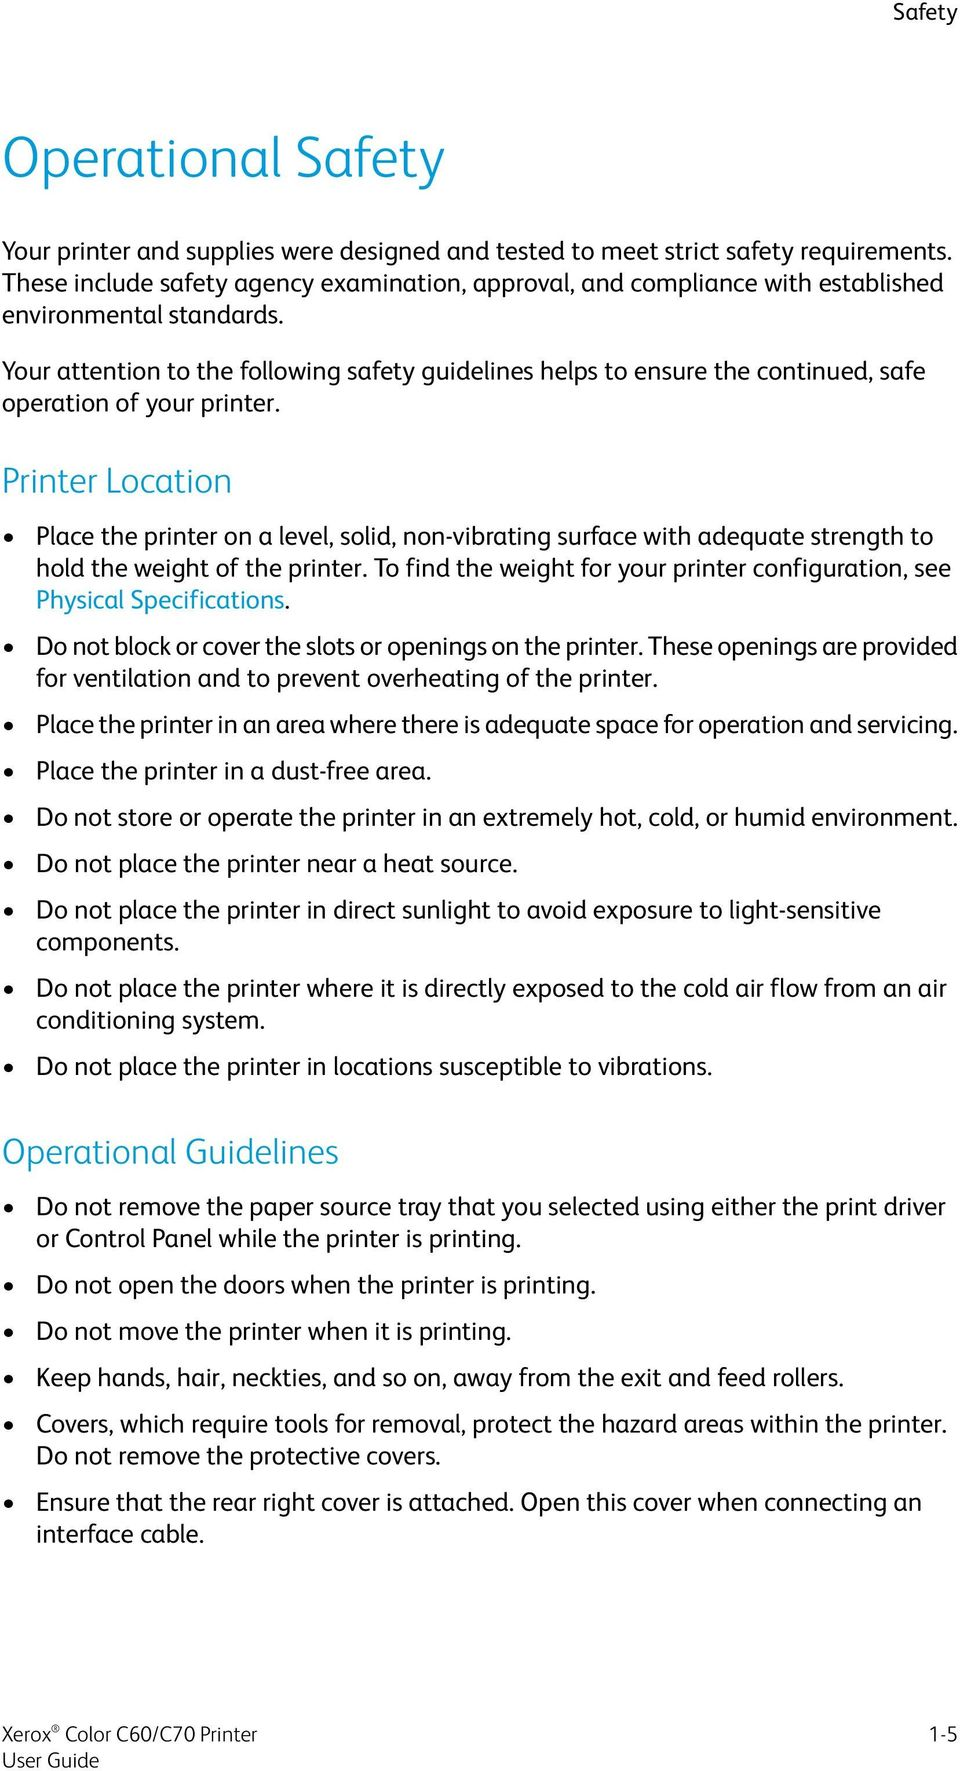 Software Version 1 0  Xerox Color C60/C70 Printer User Guide